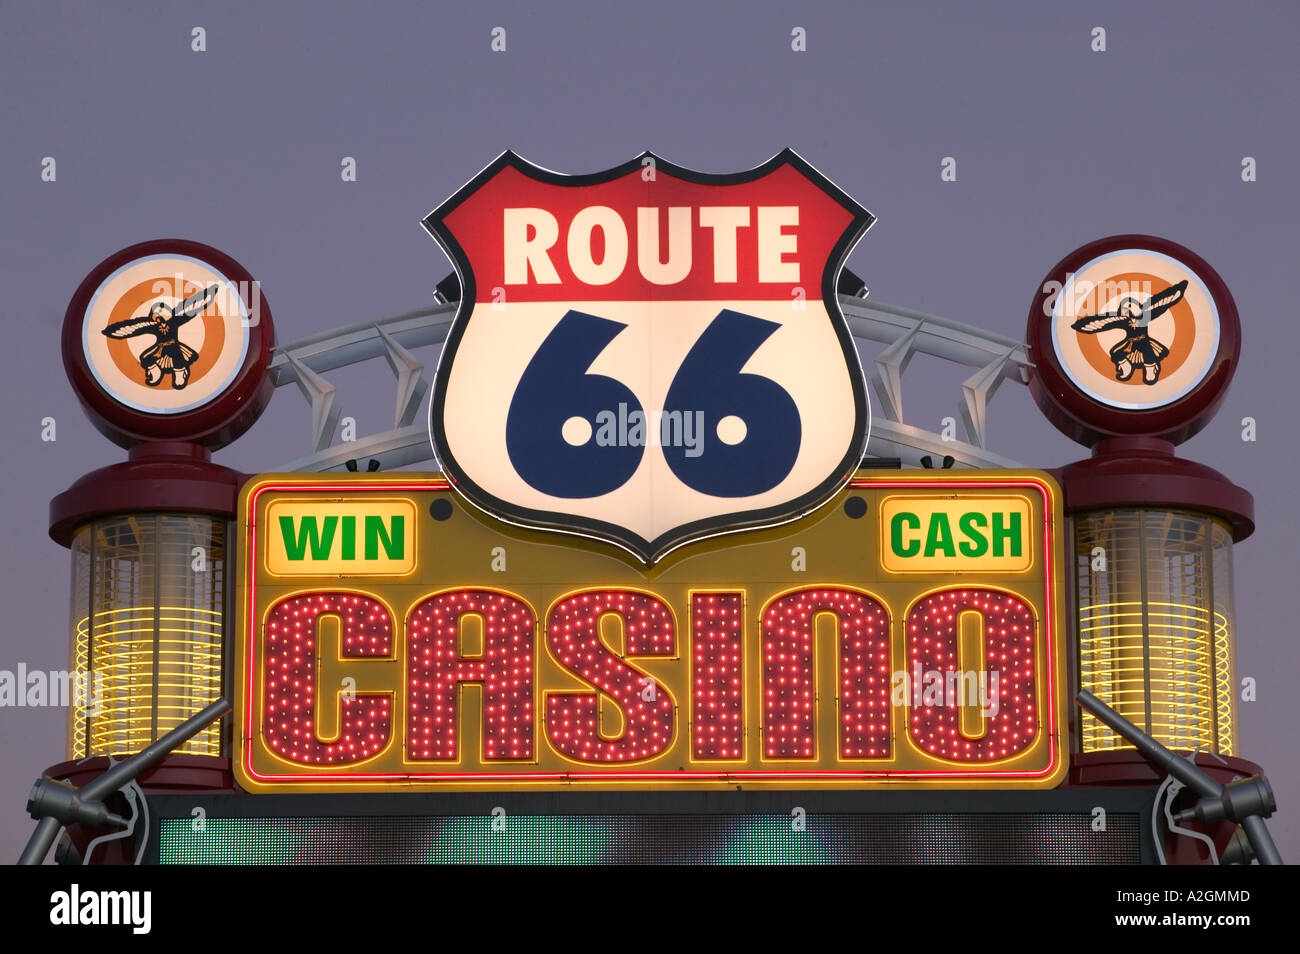 Rt 66 casino new mexico disordered gambling among racial and ethnic groups in the us